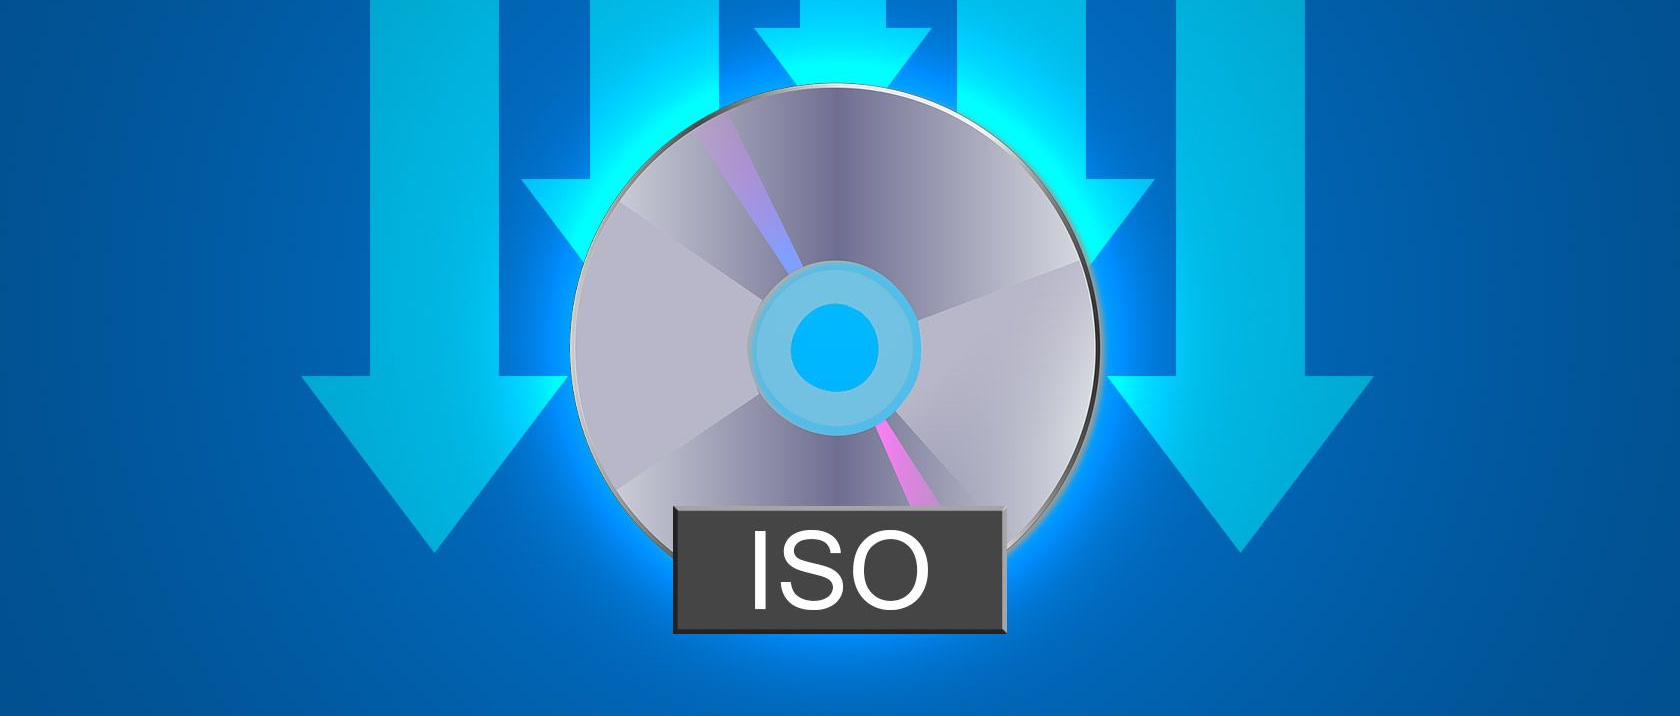 iso - Microsoft Windows & Office ISO Download Tool